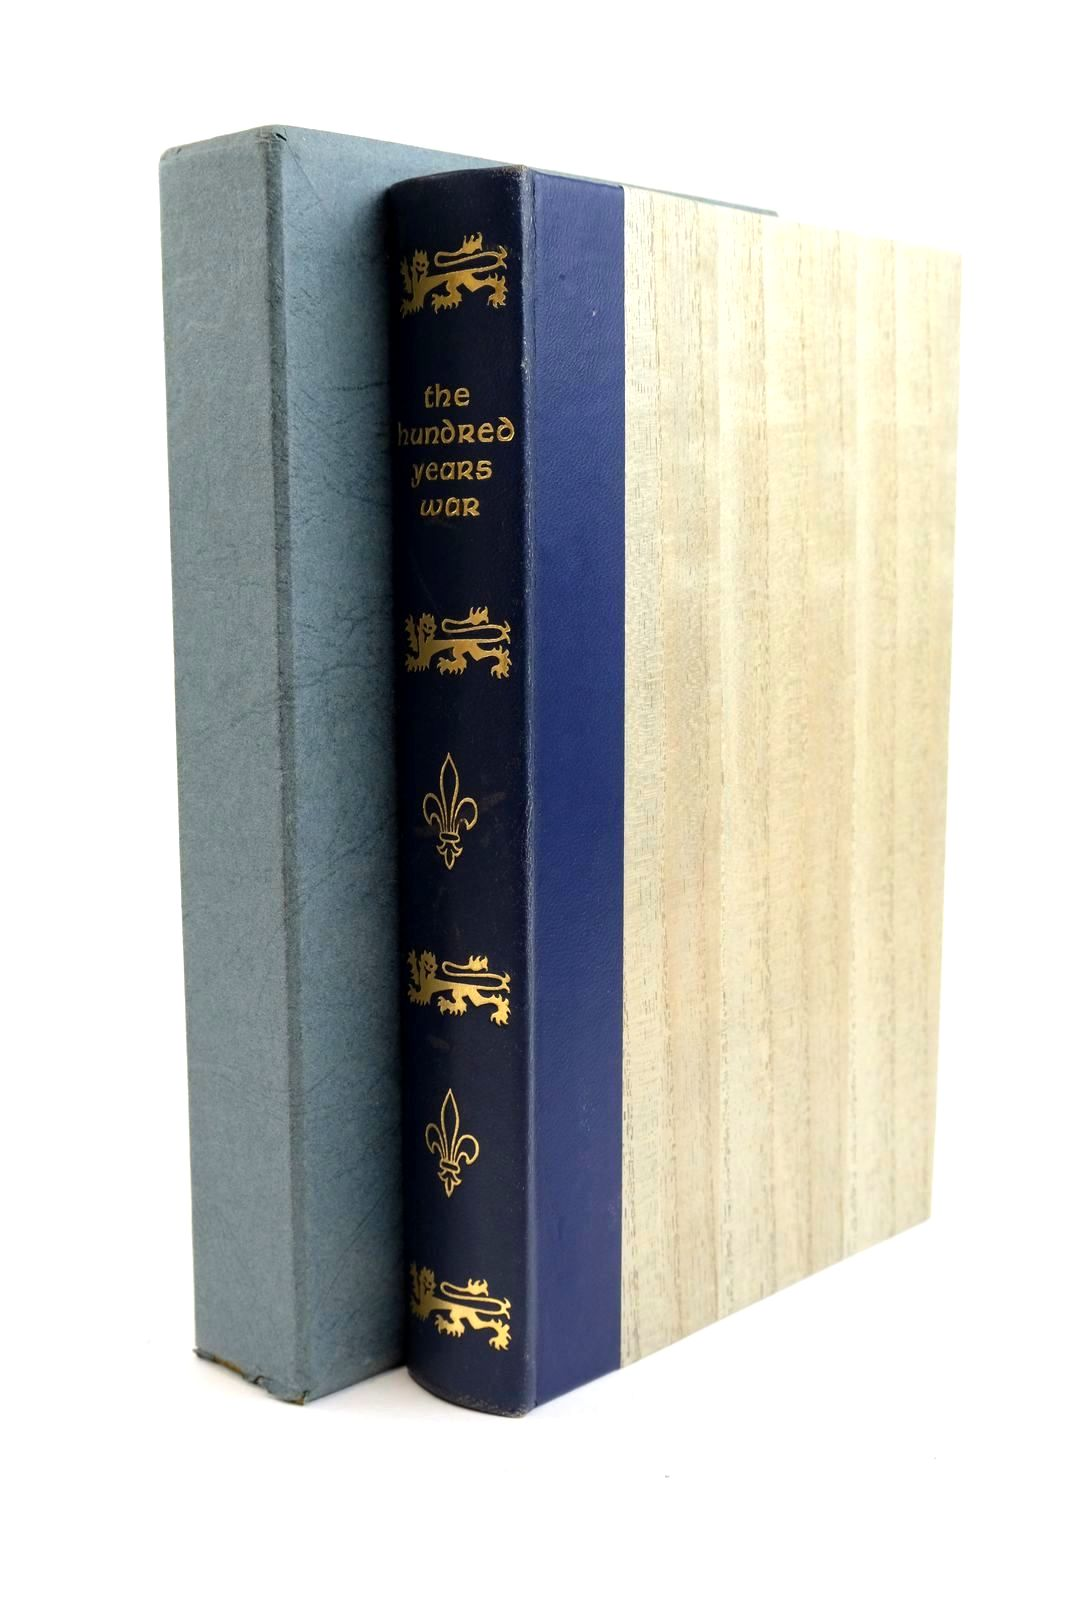 Photo of CONTEMPORARY CHRONICLES OF THE HUNDRED YEARS WAR written by Le Bel, Jean Froissart, Jean De Monstrelet, Enguerrand published by Folio Society (STOCK CODE: 1321577)  for sale by Stella & Rose's Books